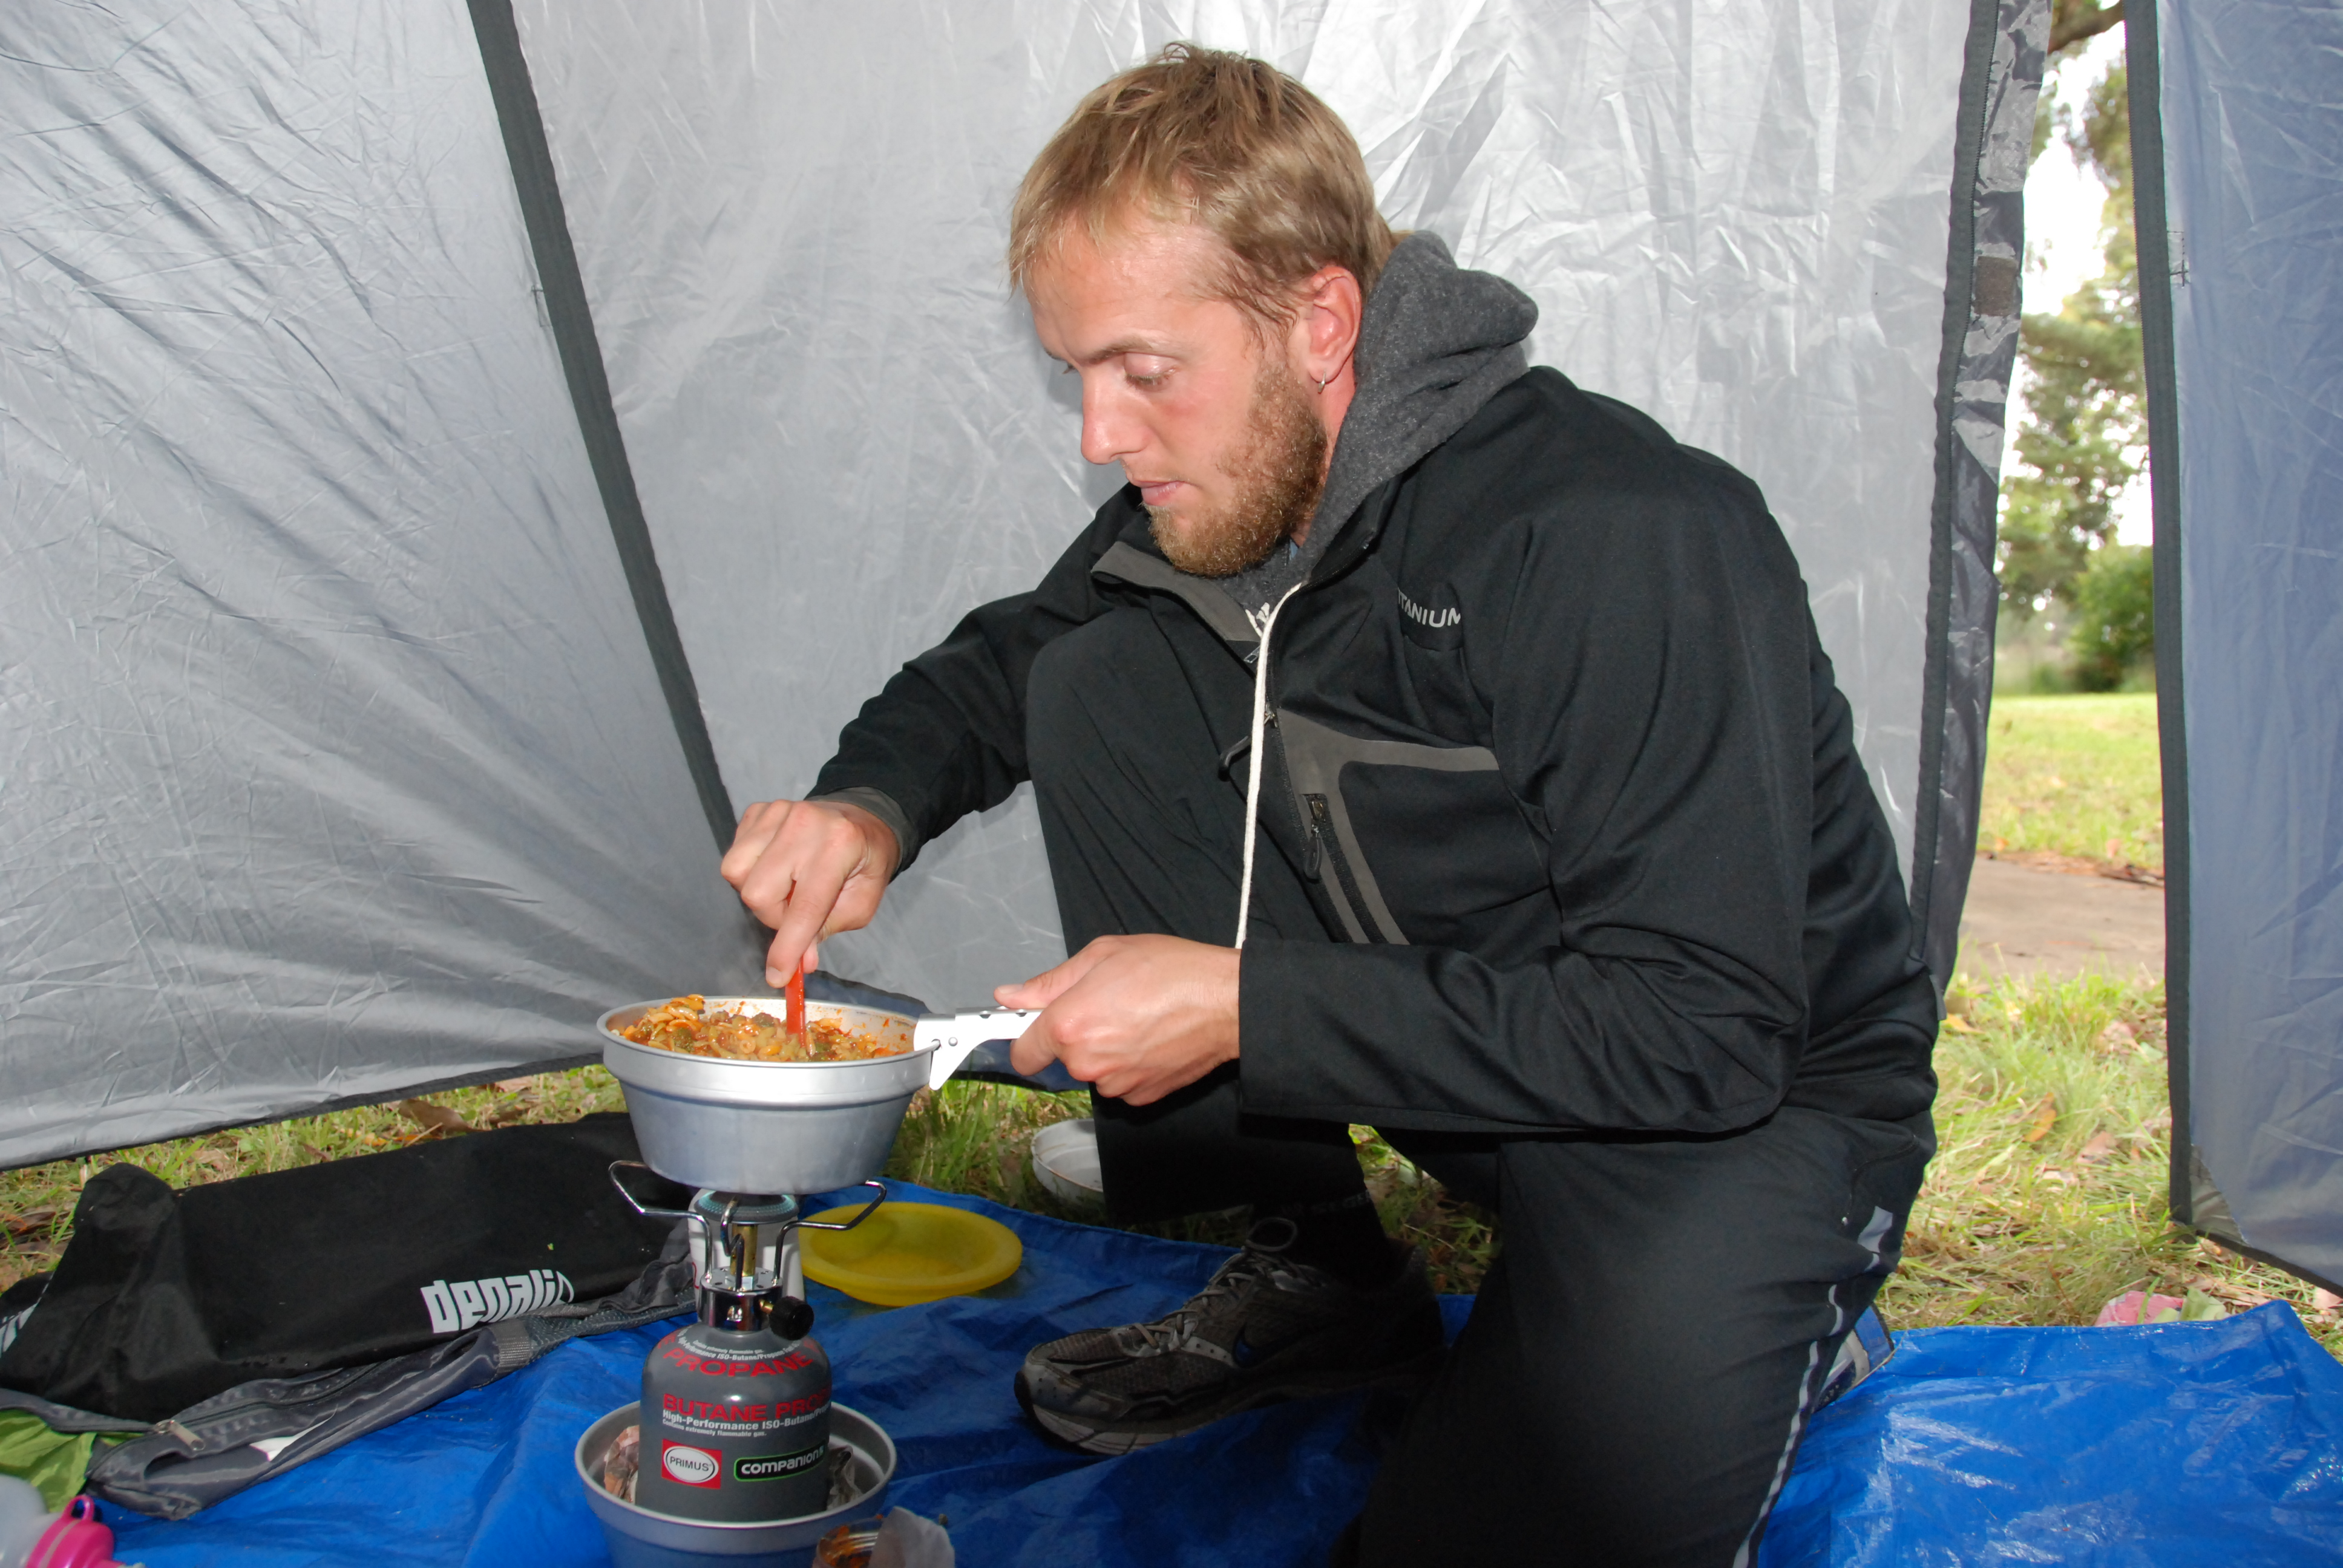 Cooking inside our tent in the first two weeks we had 10 days of rain.  sc 1 st  Life is GOOD follow us & Australia 2010-11 | Life is GOOD follow us